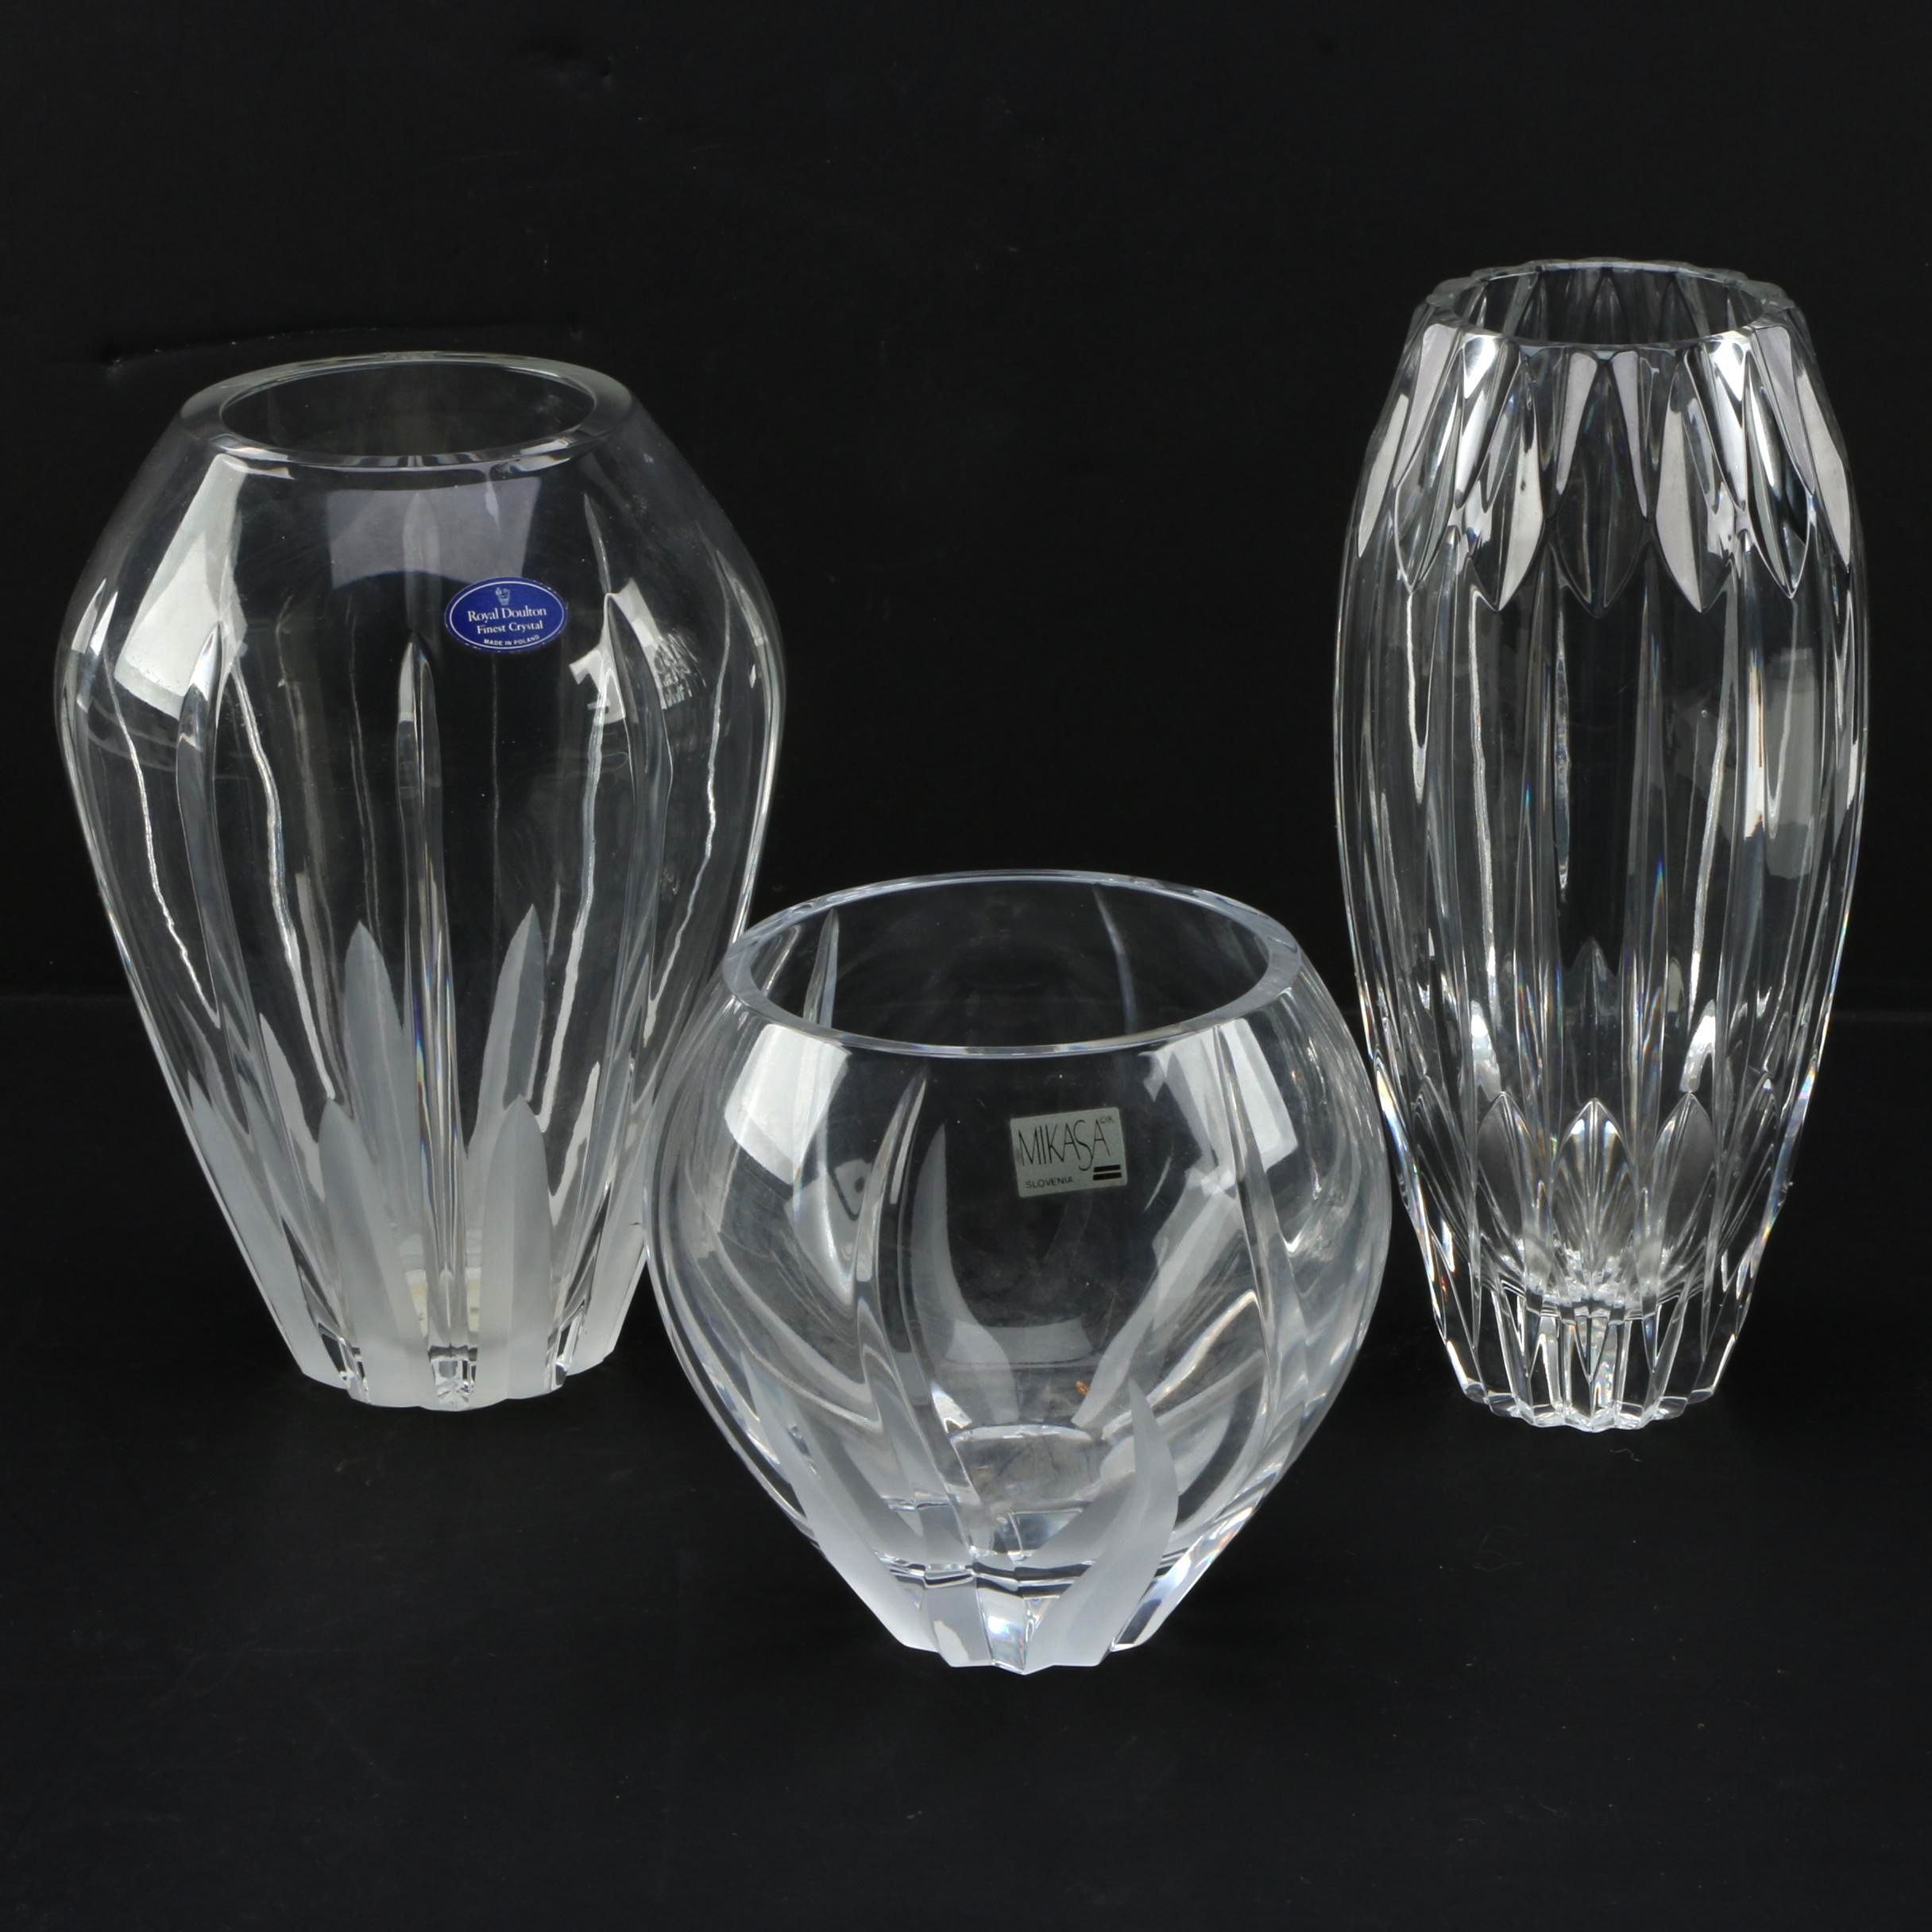 Crystal Vases Featuring Royal Doulton